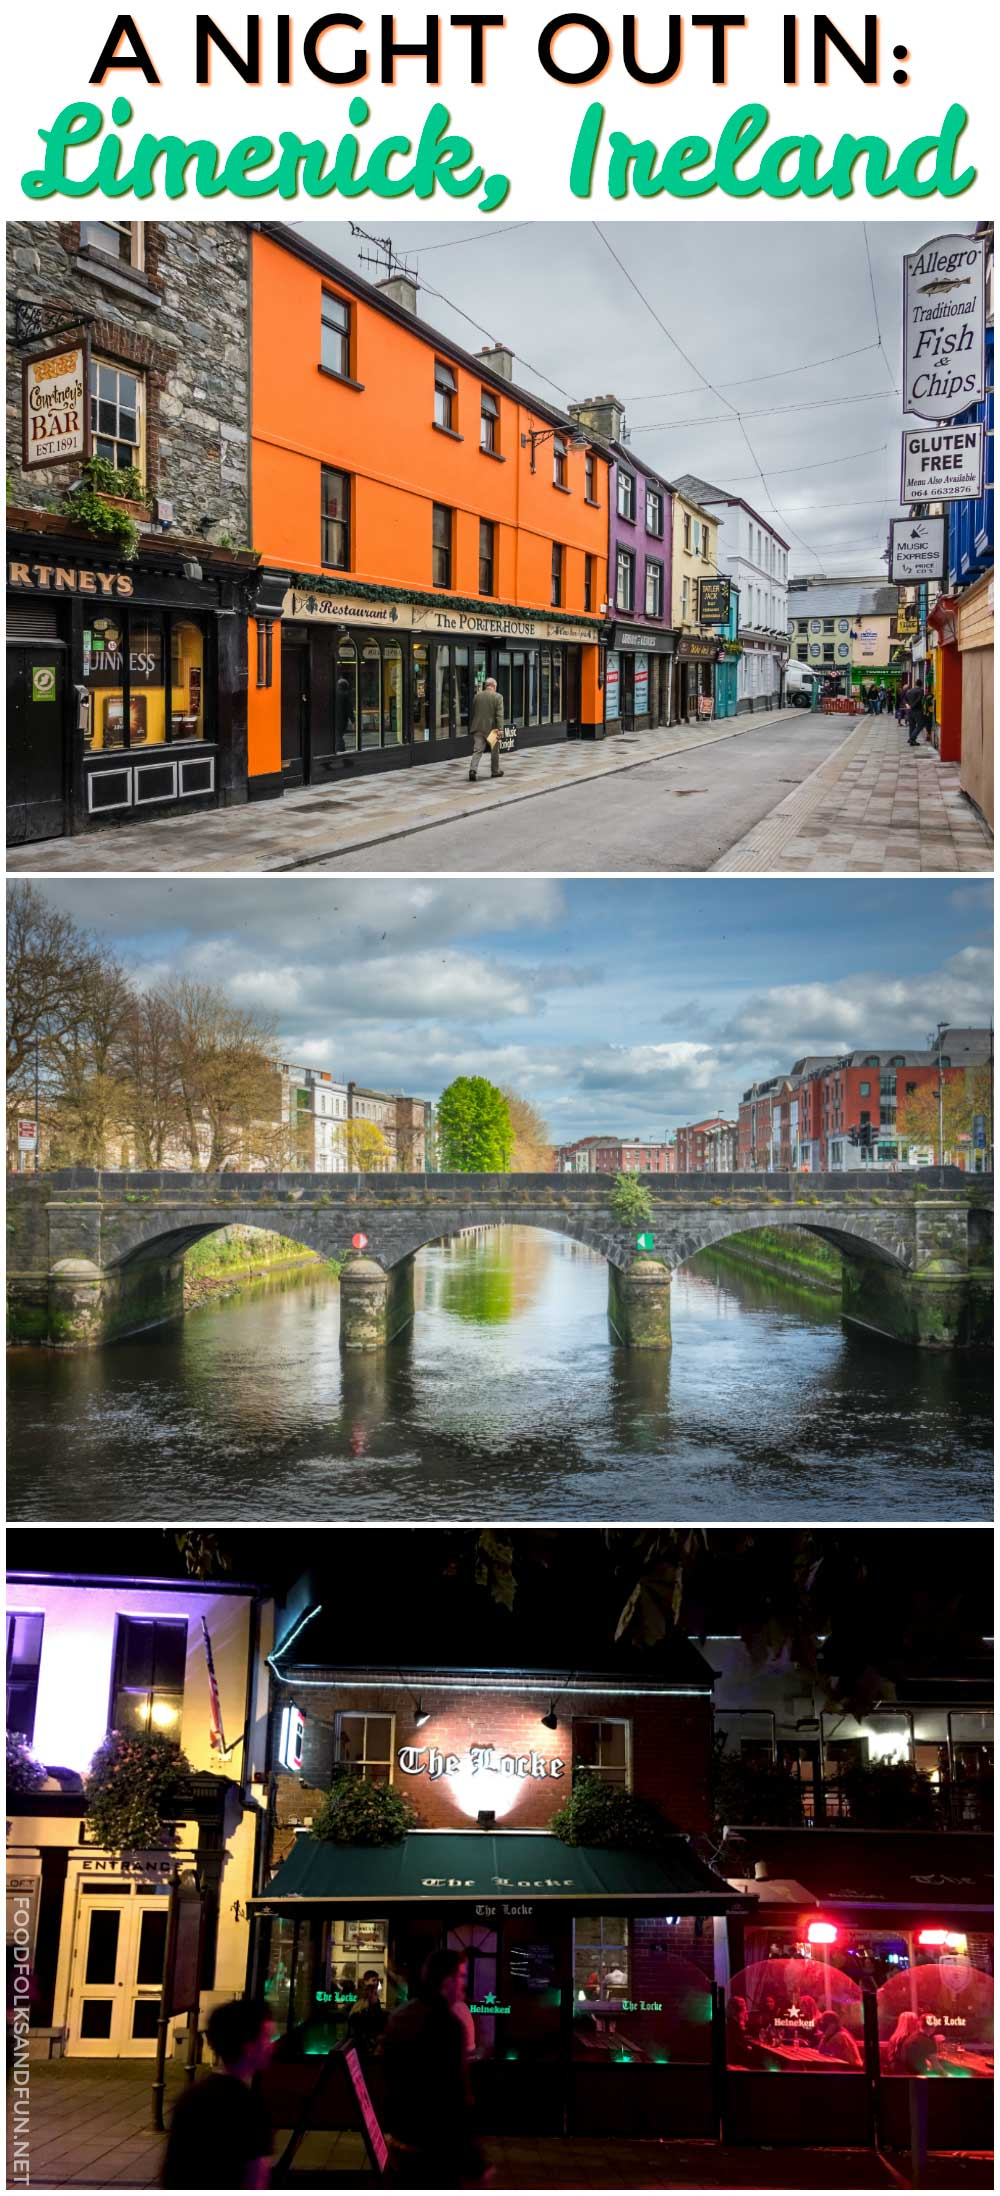 Limerick, Ireland is a beautiful city set on the banks of the Shannon River. There's so much to see and do during the day, and at night the Medieval Quarter is where it's at for delicious gastro pups and live Irish music and dancing.  via @foodfolksandfun